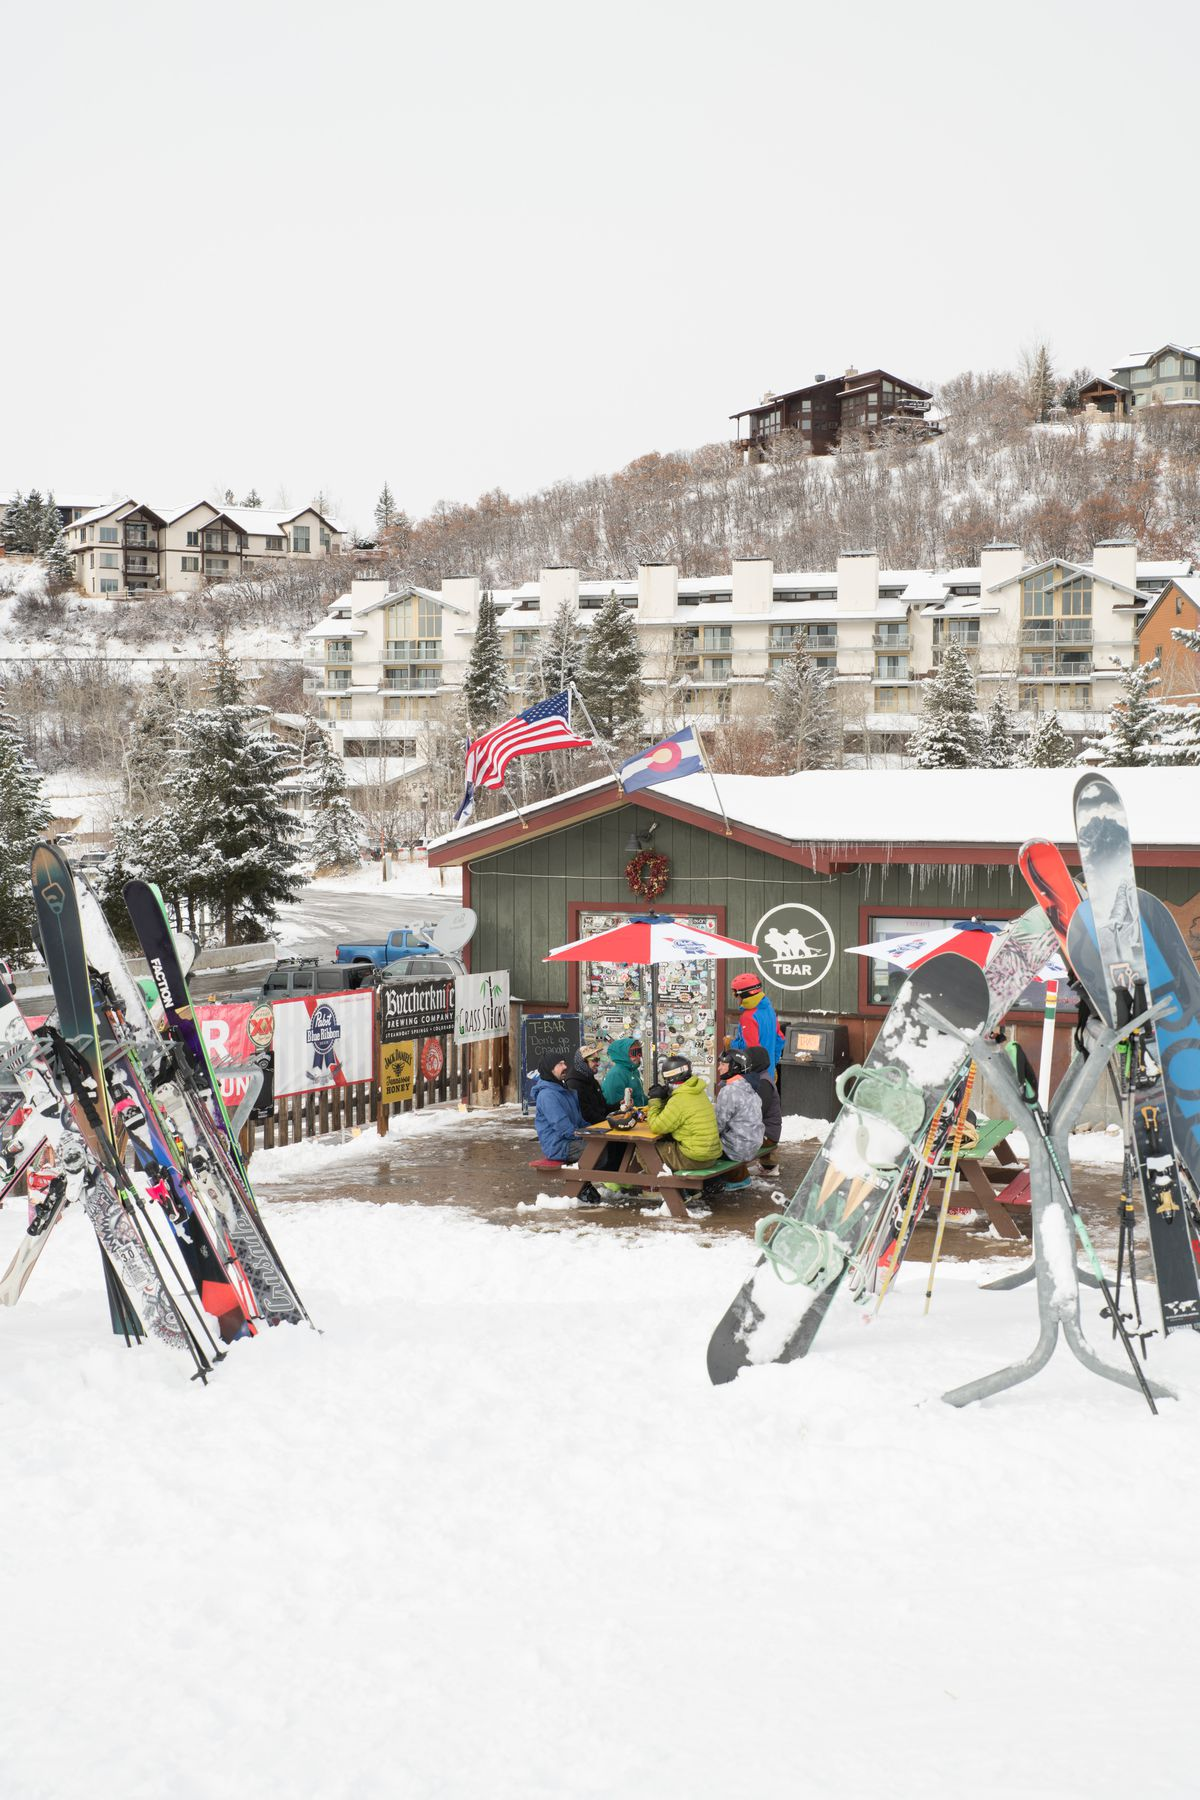 A bar with skis and snowboards resting outside and patrons sitting at an out door table, surrounded by snow.